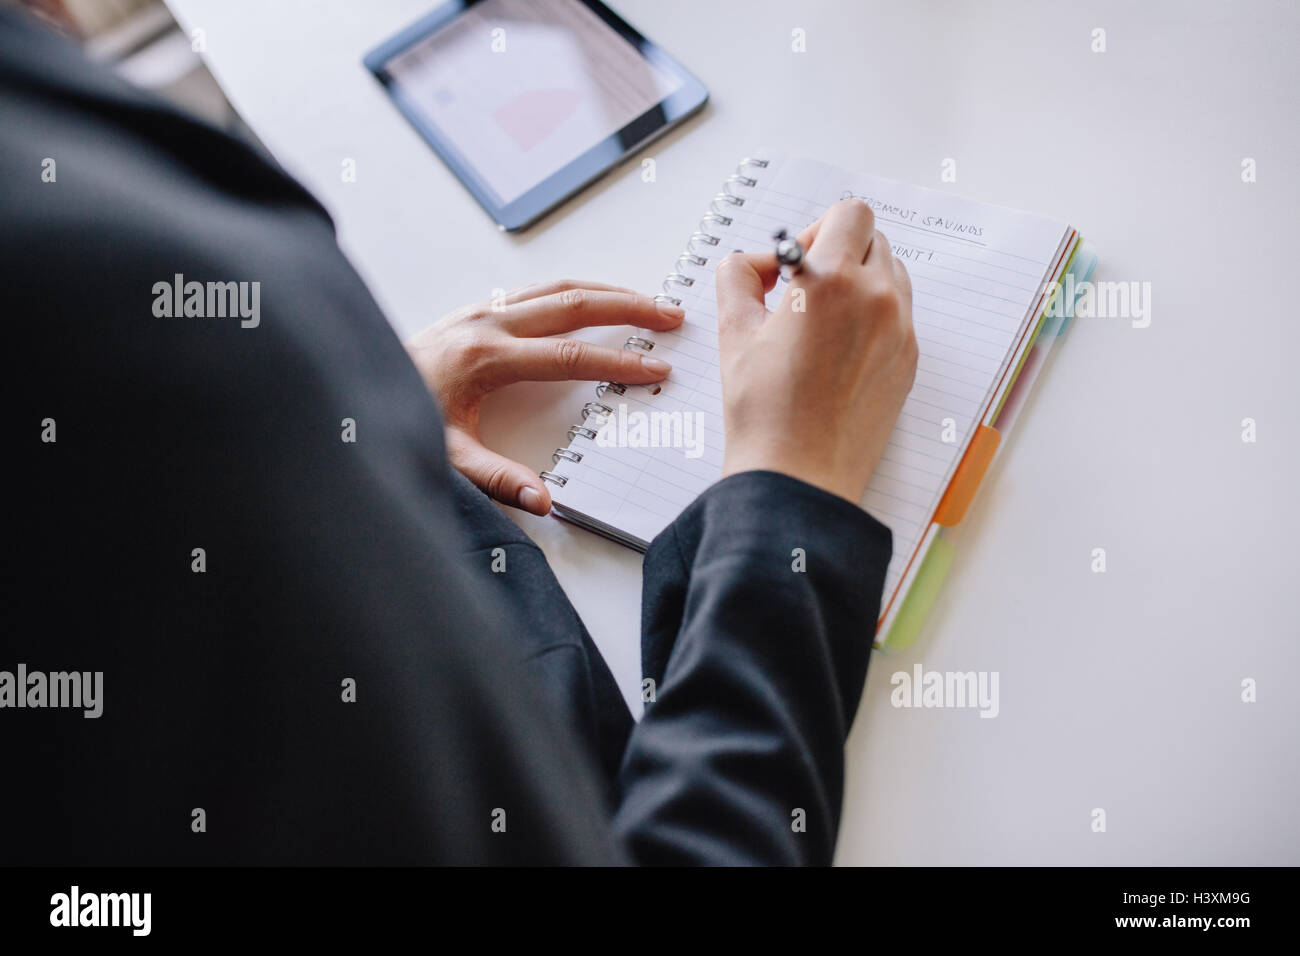 Close up shot of young businesswoman mains écrit sur le bloc-notes au bureau. Les femmes prenant des notes Photo Stock